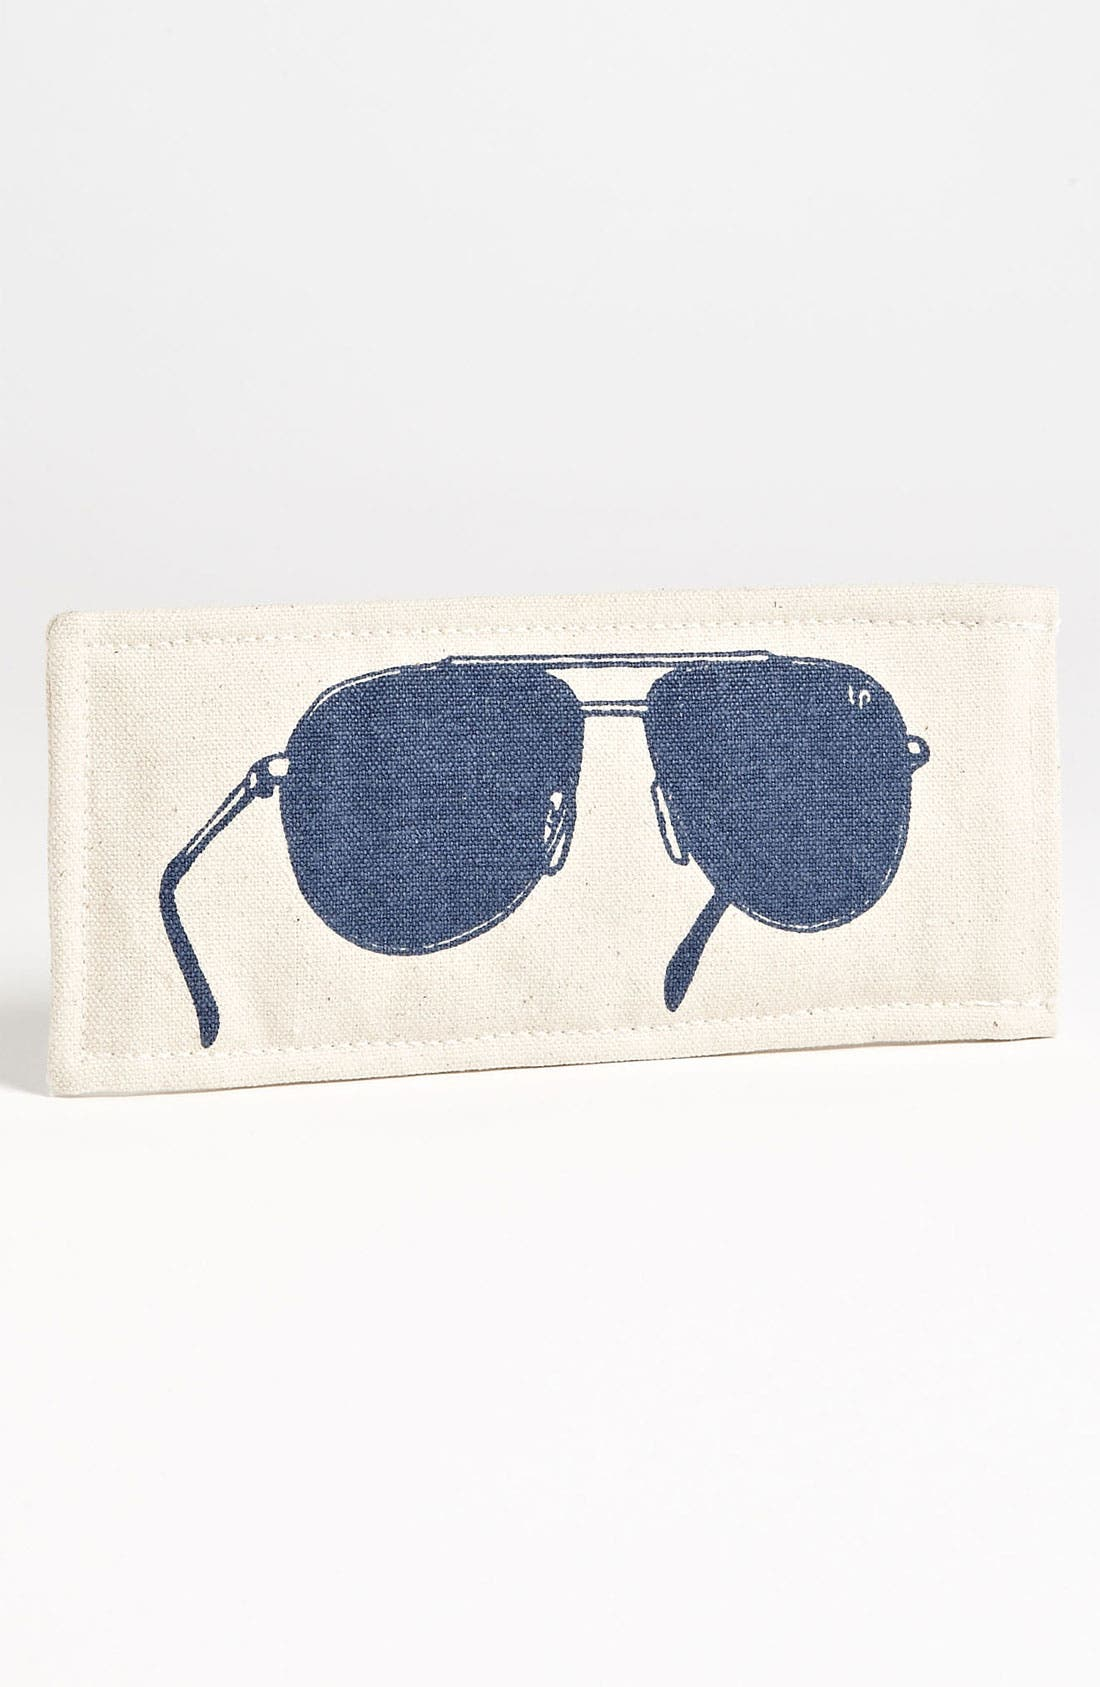 Alternate Image 1 Selected - Thomas Paul 'Aviator' Sunglass Case